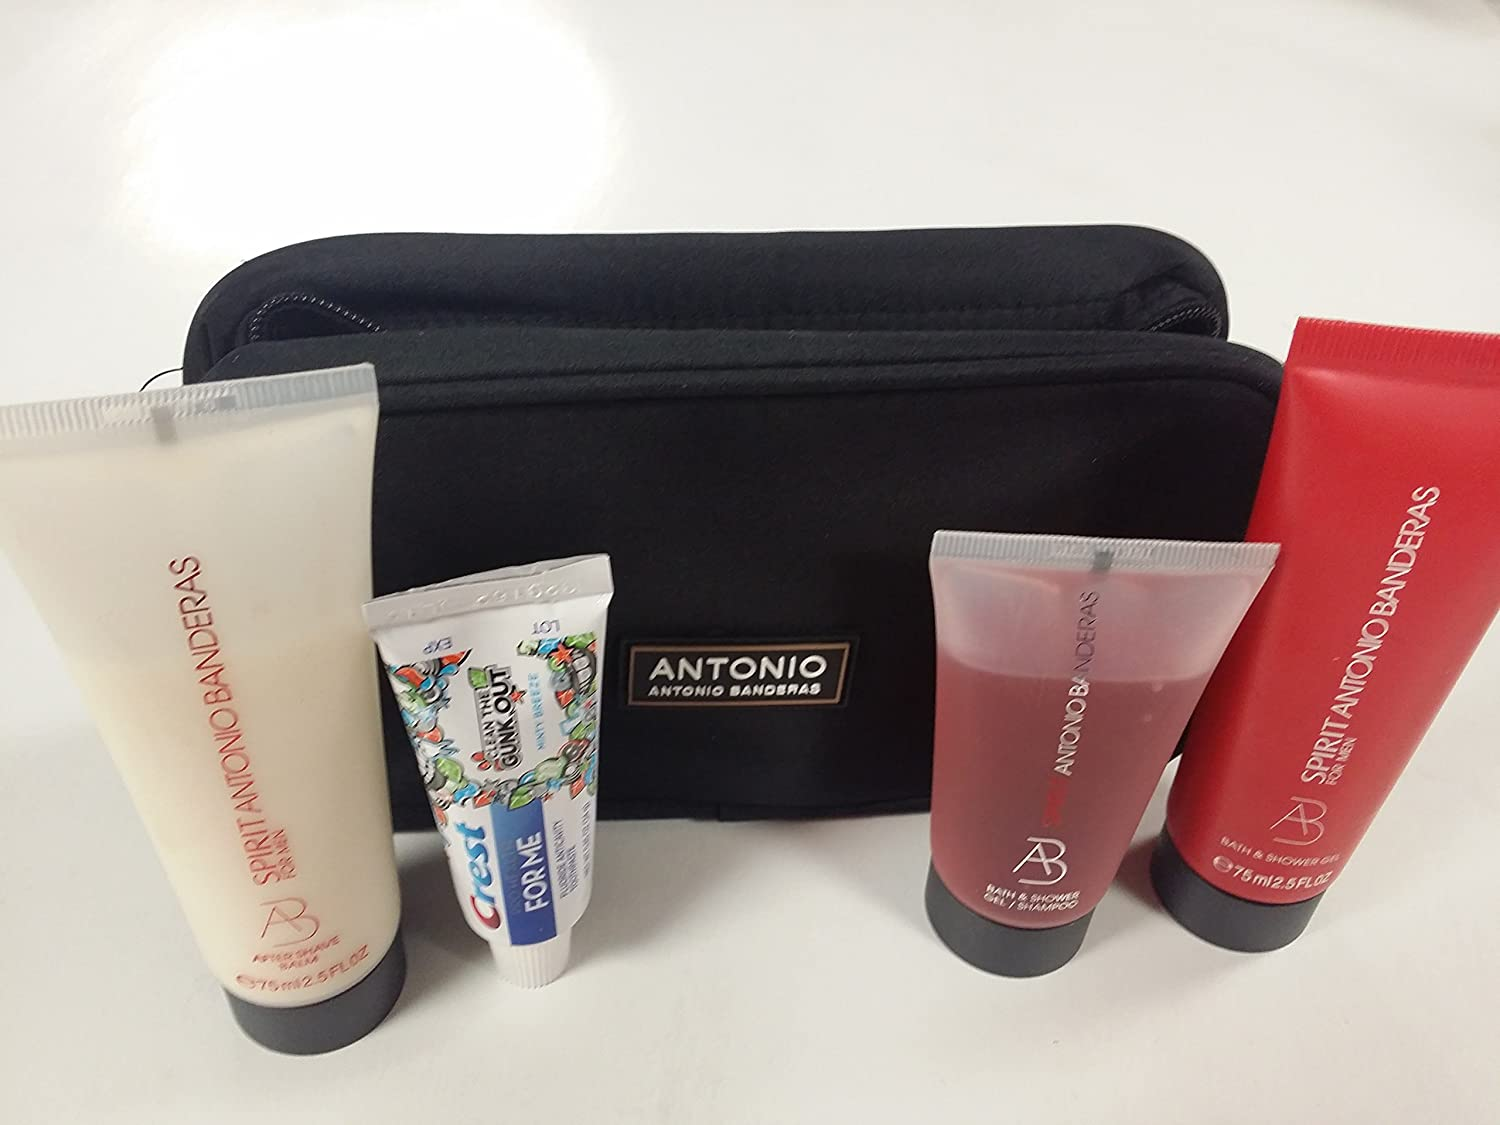 Antonio Banderas Travel Kit with Black Bag, Spirit After Shave Balm, Bath and Shower Gel/Shampoo and Crest Toothpaste